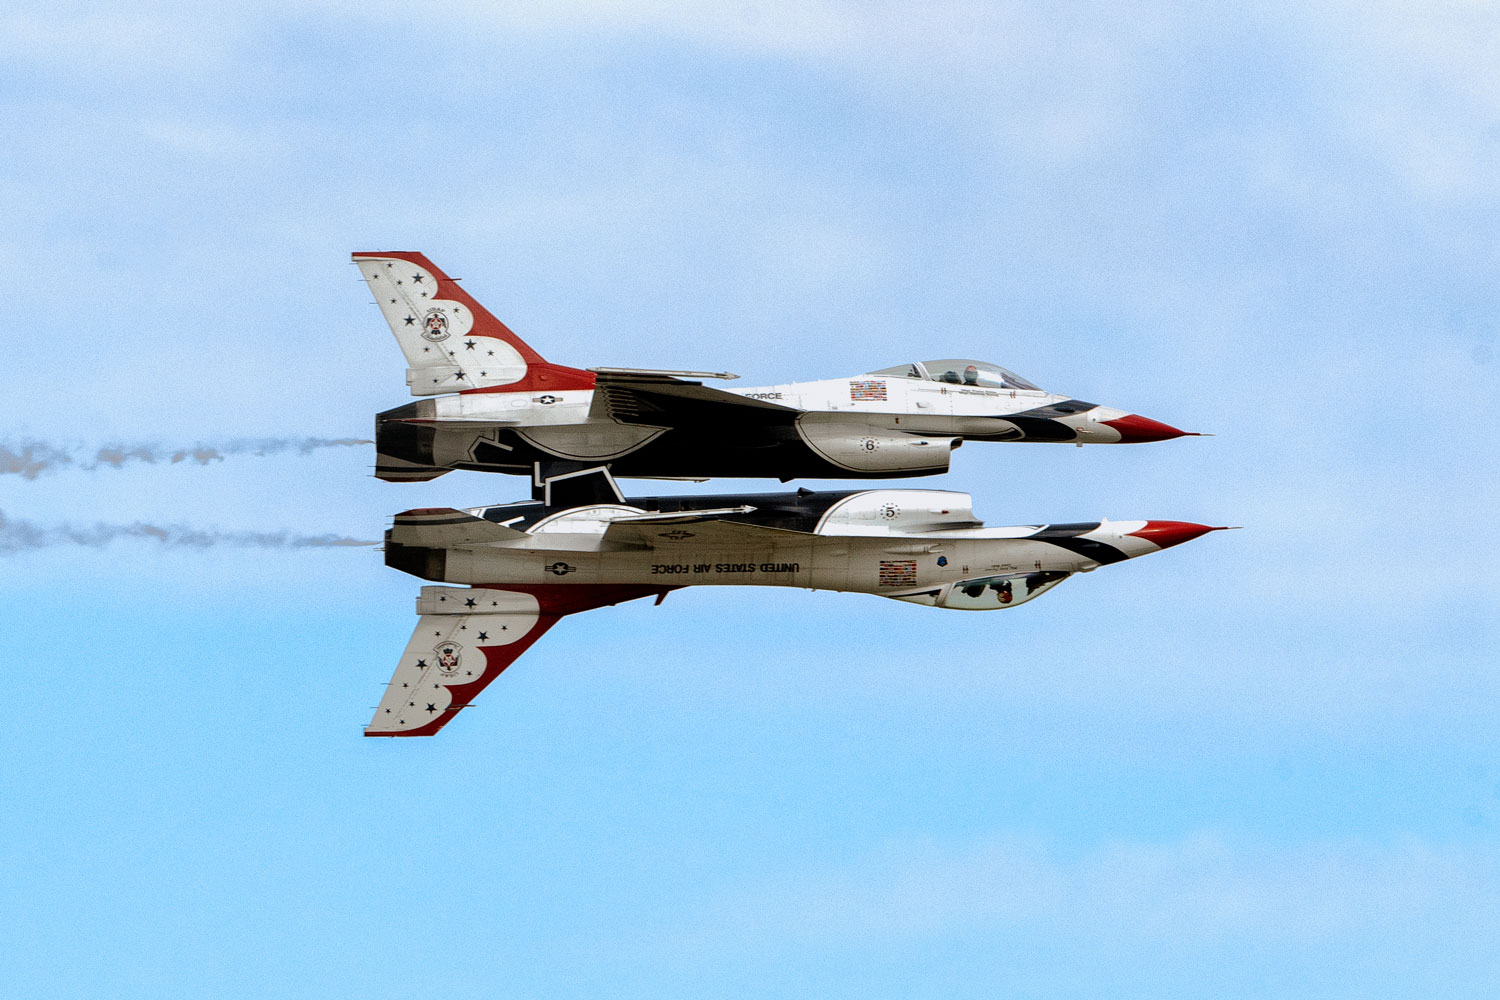 U.S. Air Force Thunderbirds perform a mirror-image maneuver during the 2017 Andrews Air Show: Air and Space Expo.